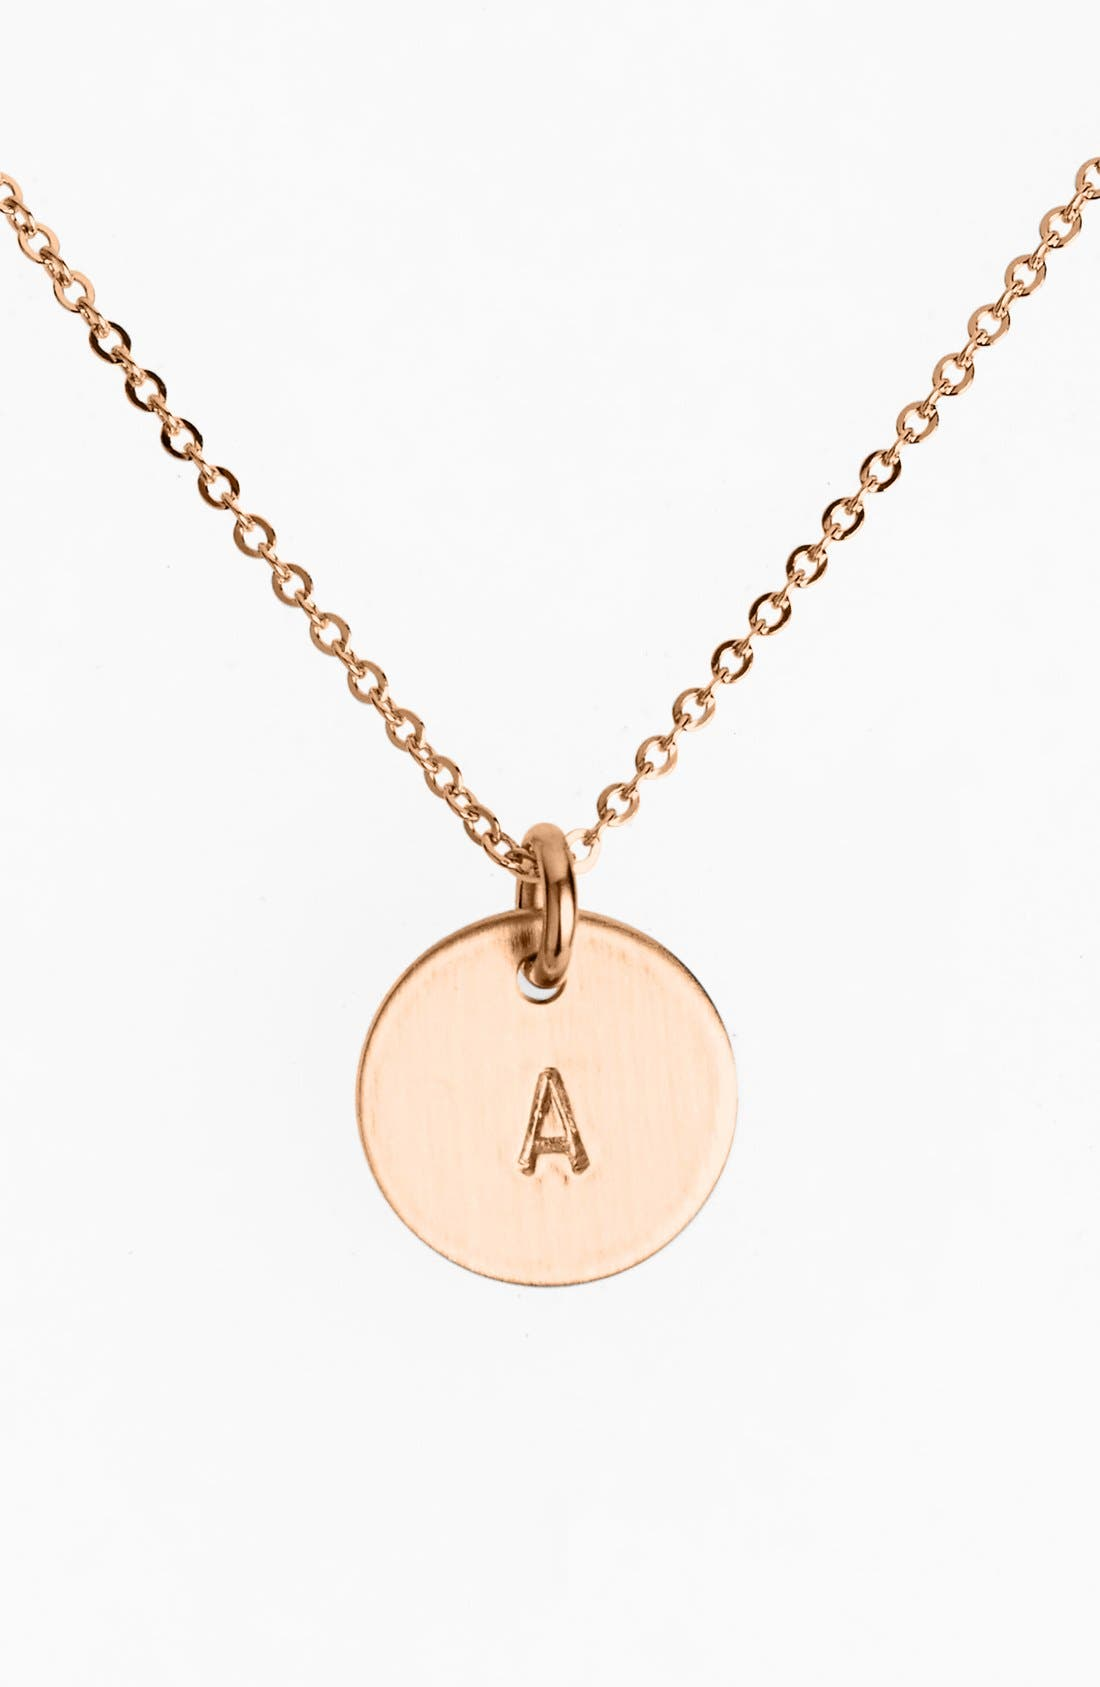 14k-Rose Gold Fill Initial Mini Disc Necklace,                             Main thumbnail 1, color,                             220